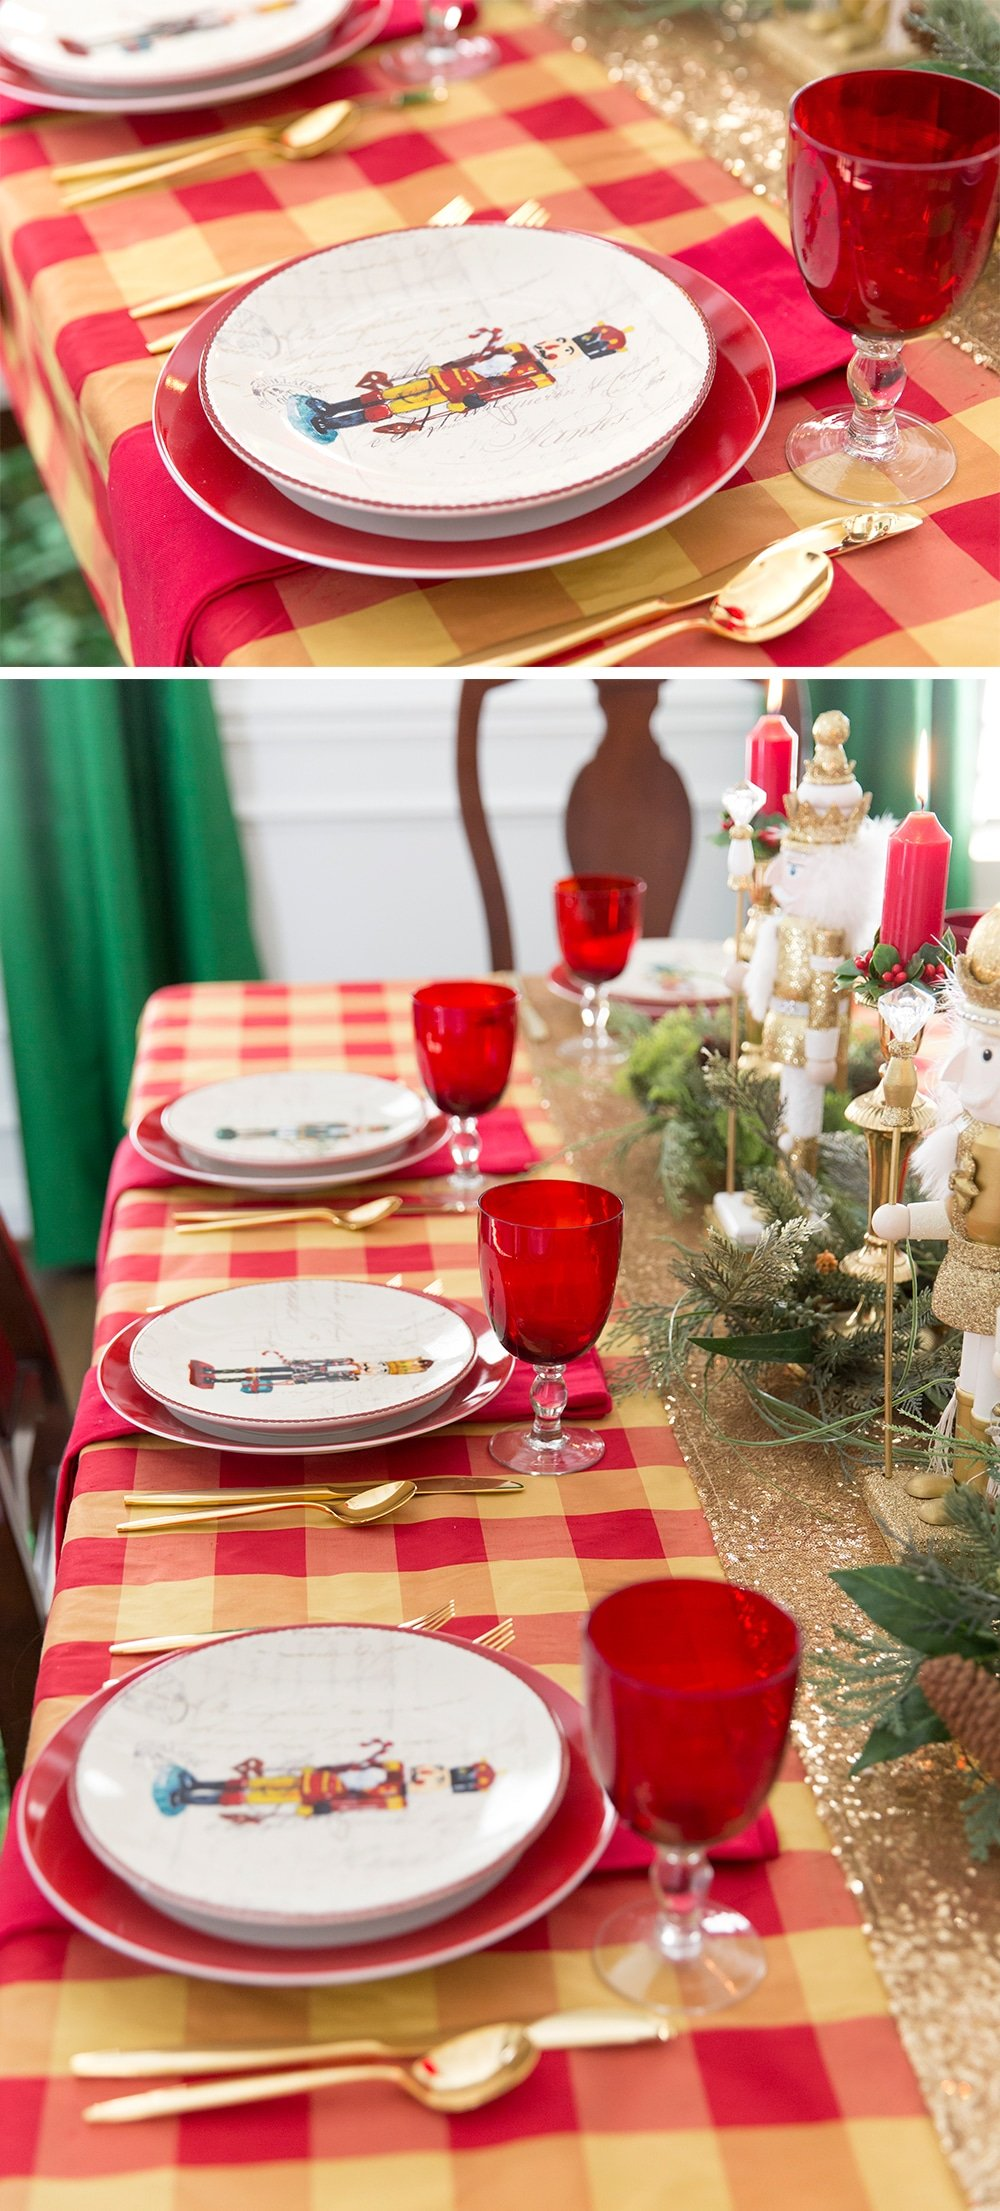 Setting a traditional Christmas tablescape for the holiday season!